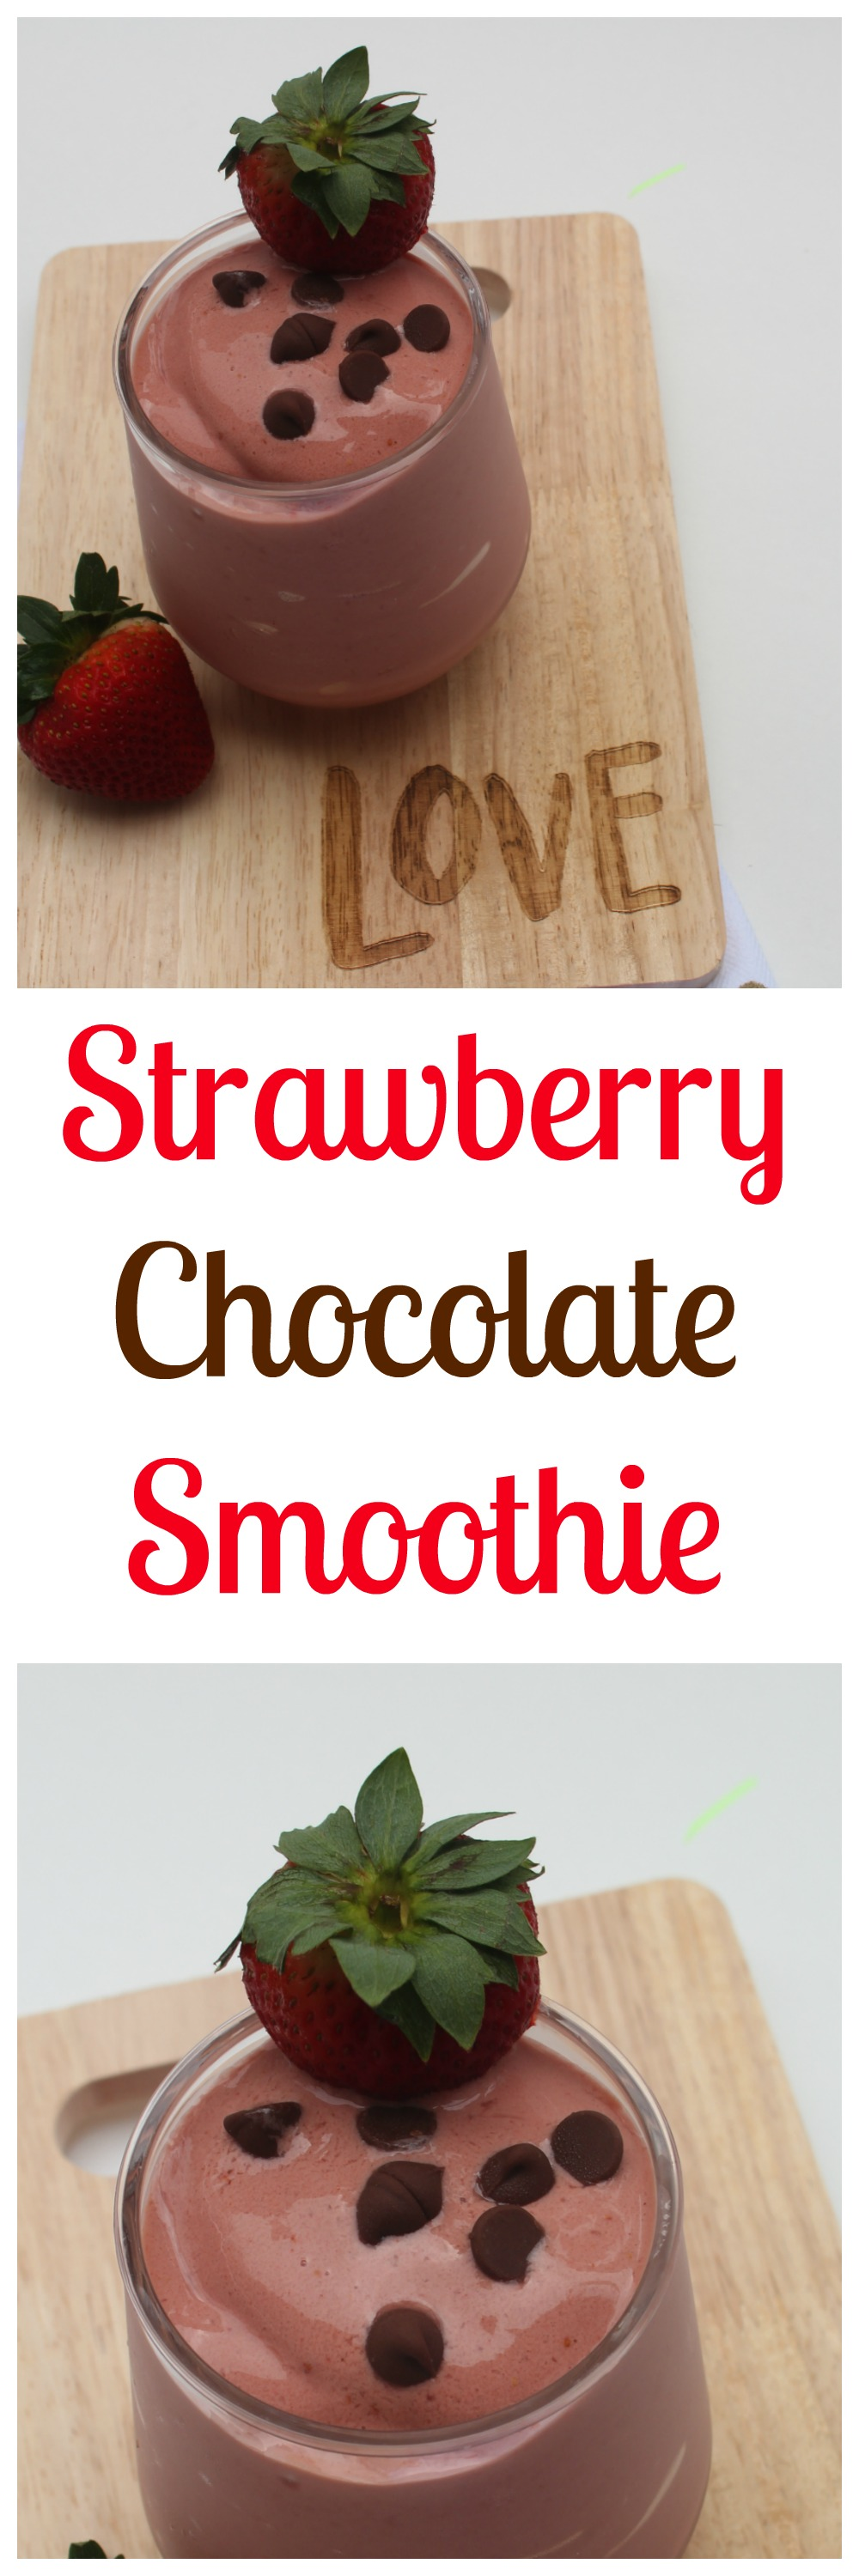 Strawberry Smoothie Recipes--These Strawberry Chocolate Smoothies are the perfect sweet and healthy treat on a hot summer day!